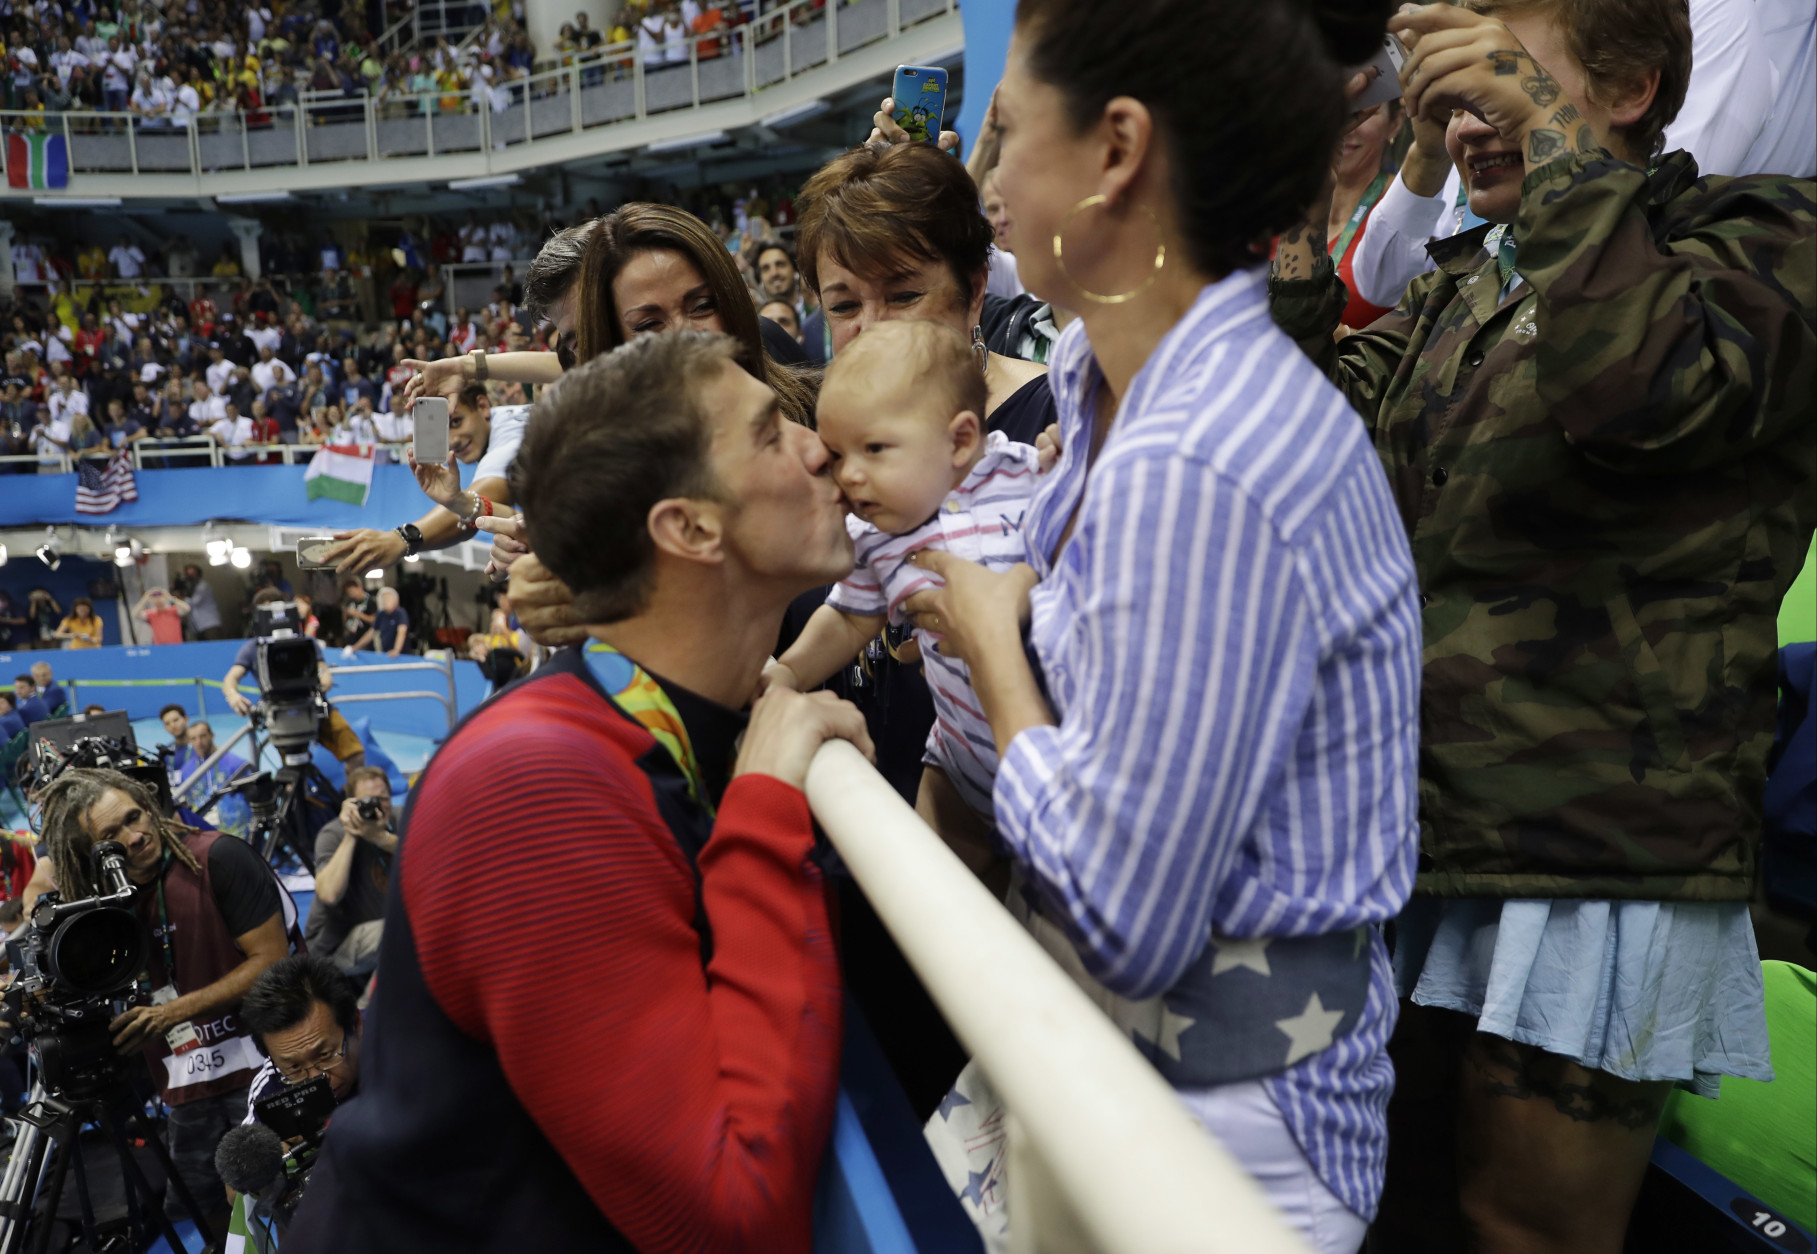 United States' Michael Phelps celebrates winning his gold medal in the men's 200-meter butterfly with his mother Debbie, fiance Nicole Johnson and baby Boomer during the swimming competitions at the 2016 Summer Olympics, Tuesday, Aug. 9, 2016, in Rio de Janeiro, Brazil. (AP Photo/Matt Slocum)